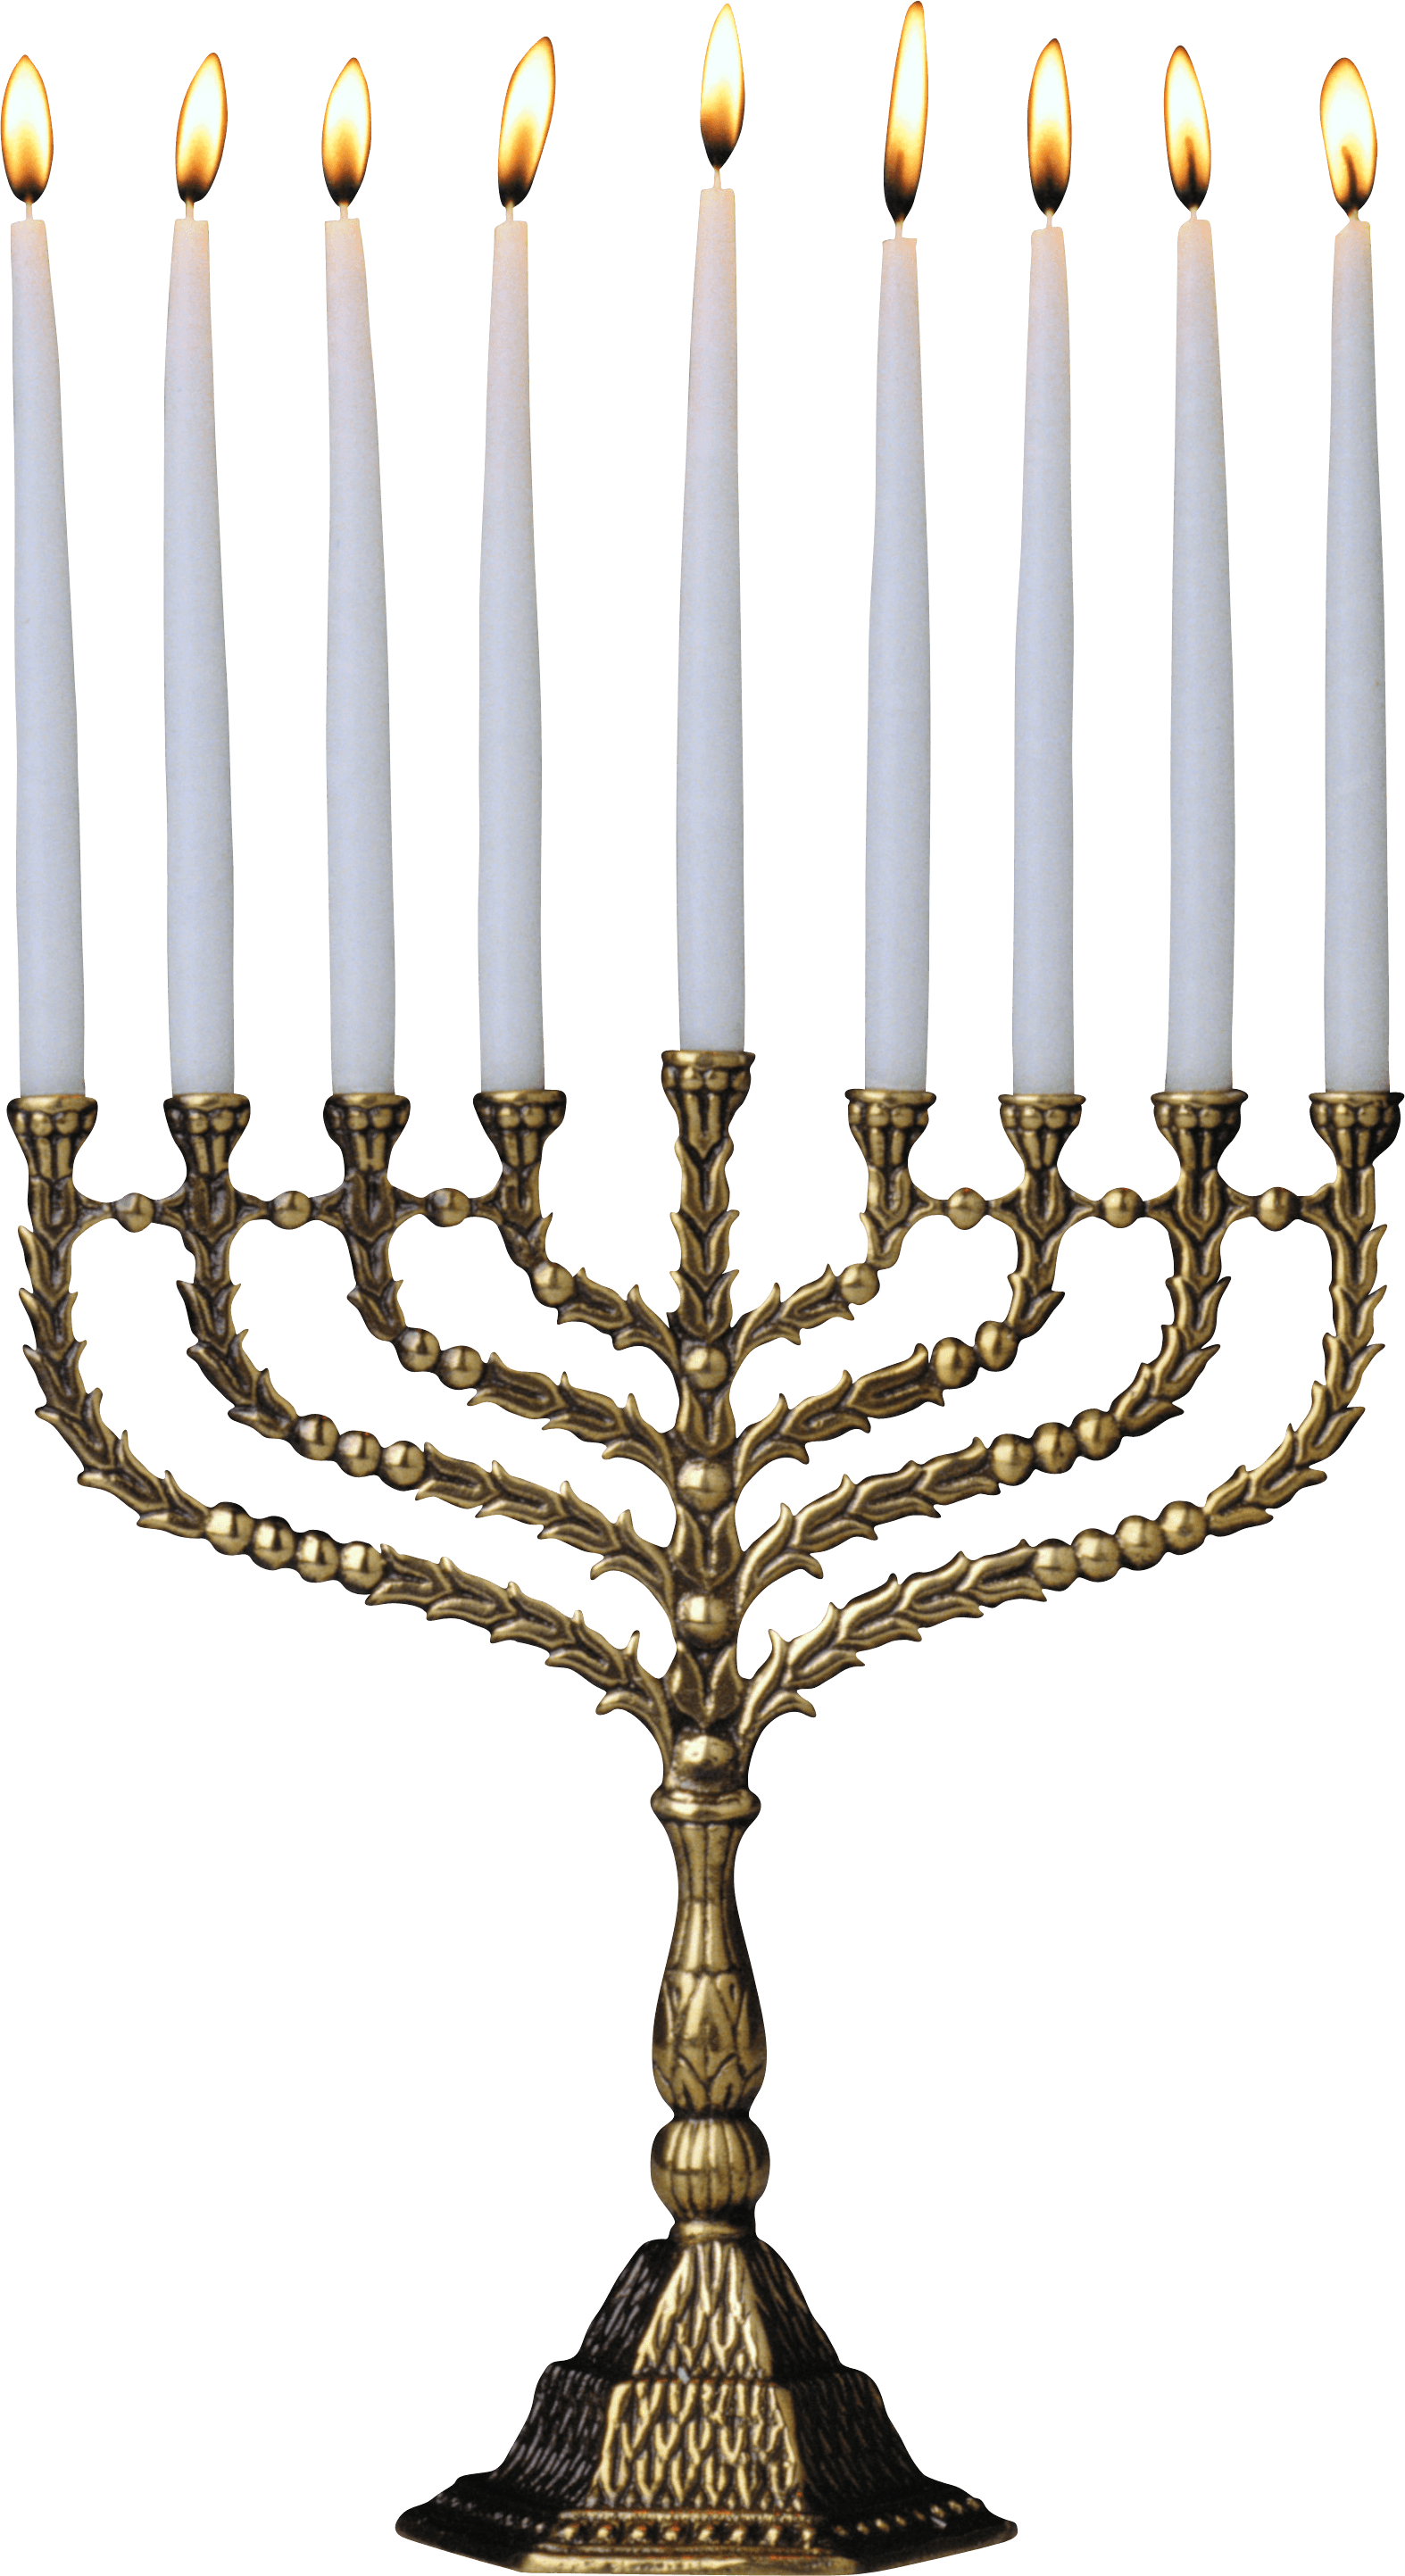 clipart black and white stock Menorah clipart menora. Candle transparent png stickpng.